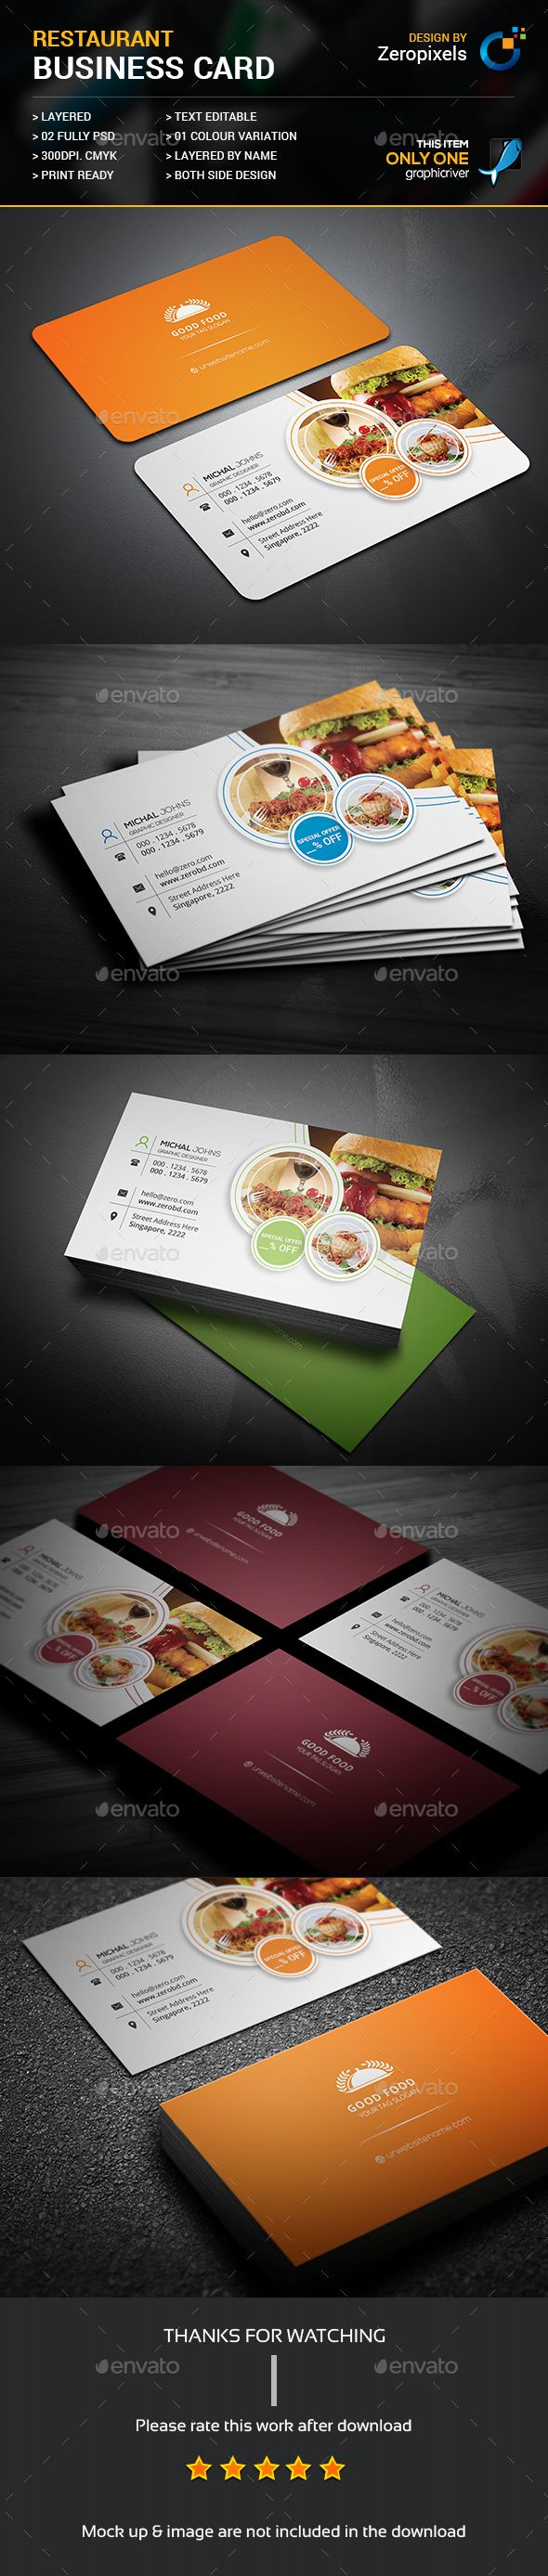 Restaurant business card template psd download here https restaurant business card template psd download here httpsgraphicriveritemrestaurant business card17465364refksioks reheart Image collections